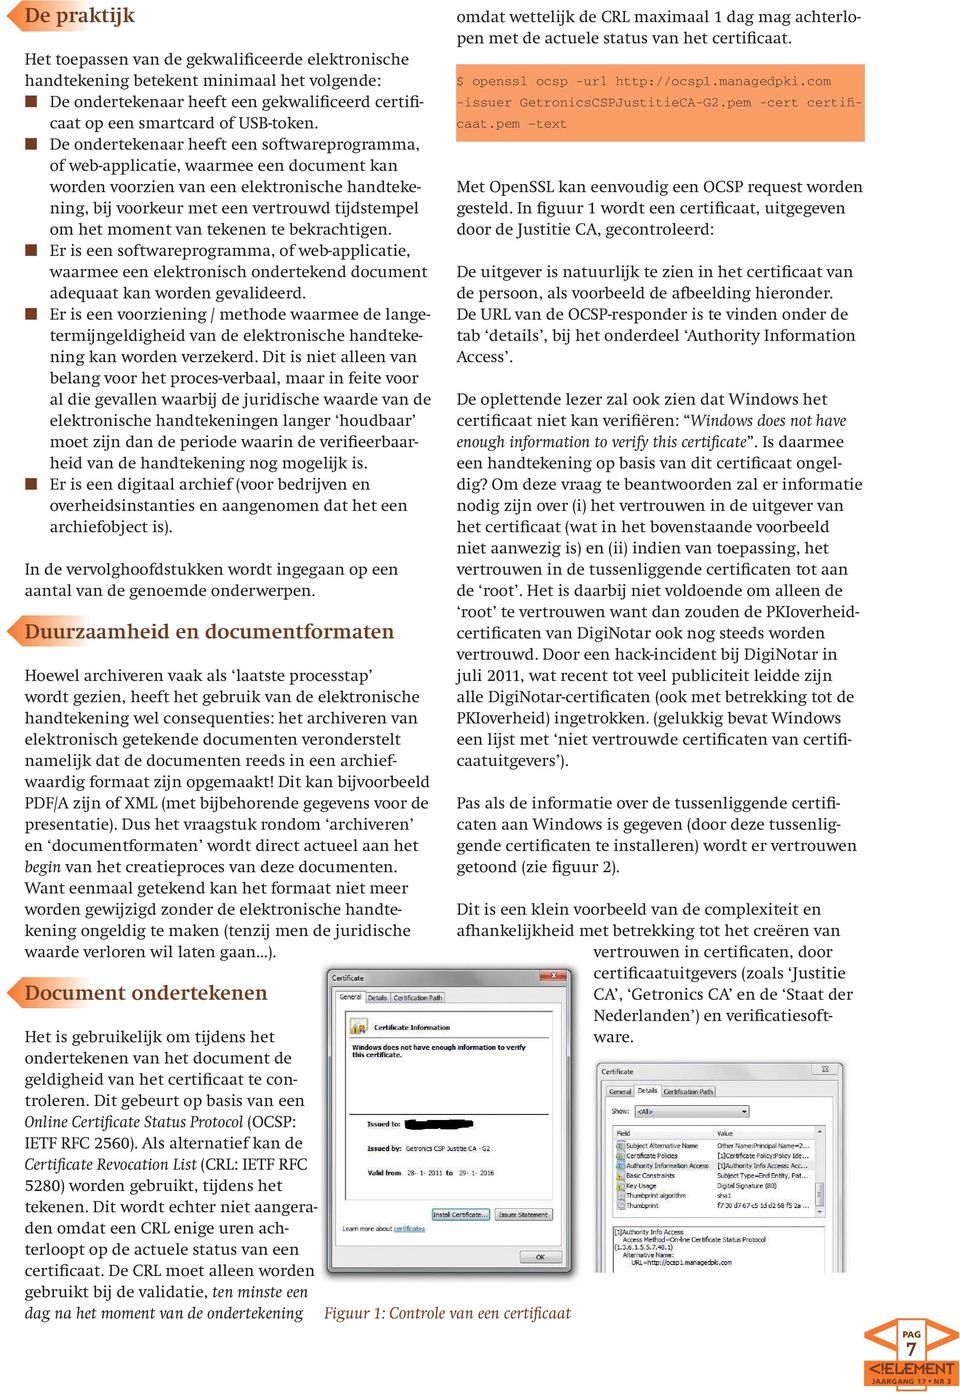 moment van tekenen te bekrachtigen. n Er is een softwareprogramma, of web-applicatie, waarmee een elektronisch ondertekend document adequaat kan worden gevalideerd.